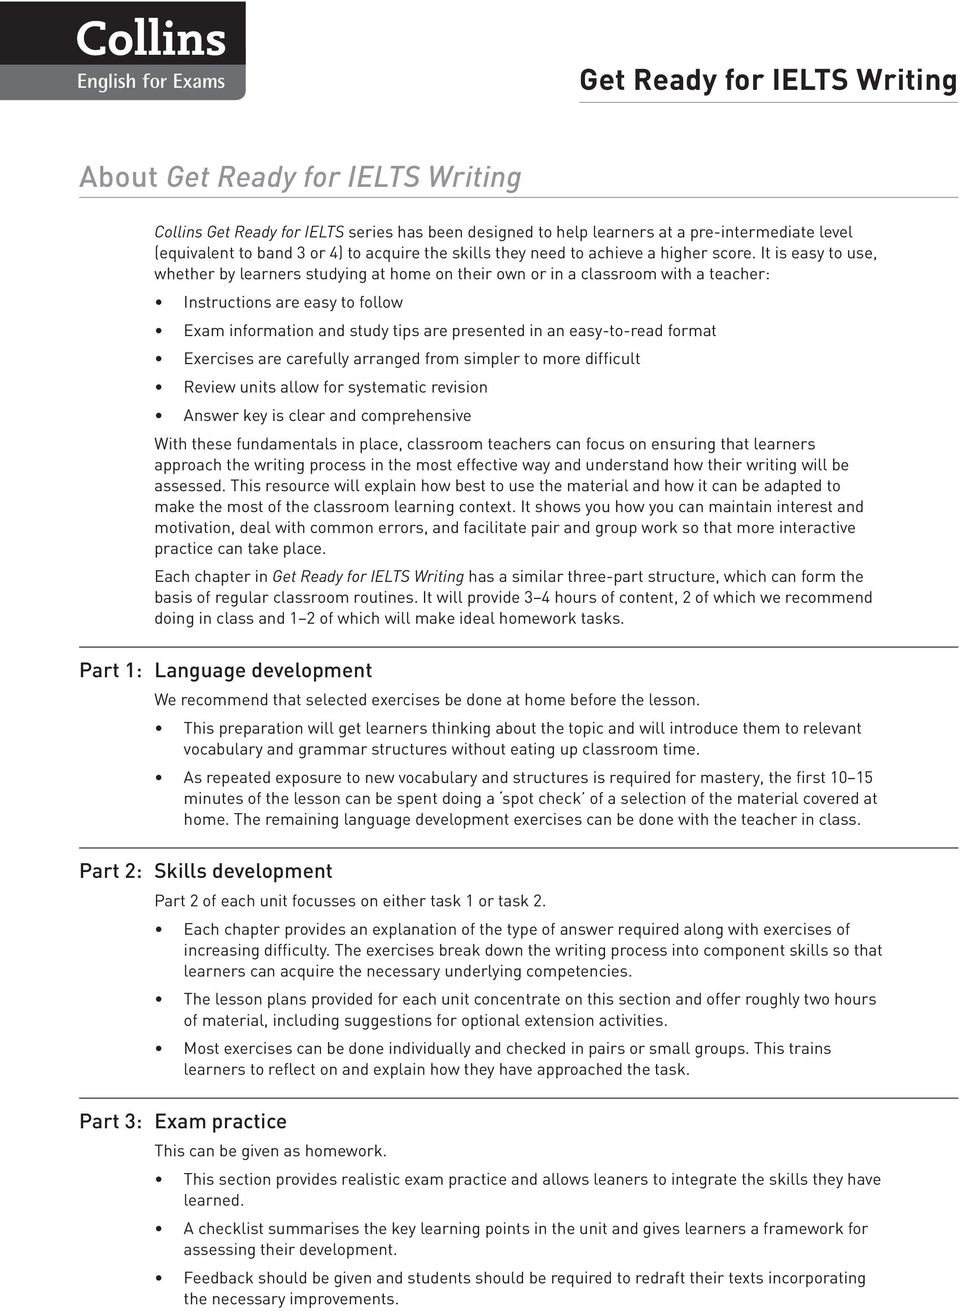 format Exercises are carefully arranged from simpler to more difficult Review units allow for systematic revision Answer key is clear and comprehensive With these fundamentals in place, classroom